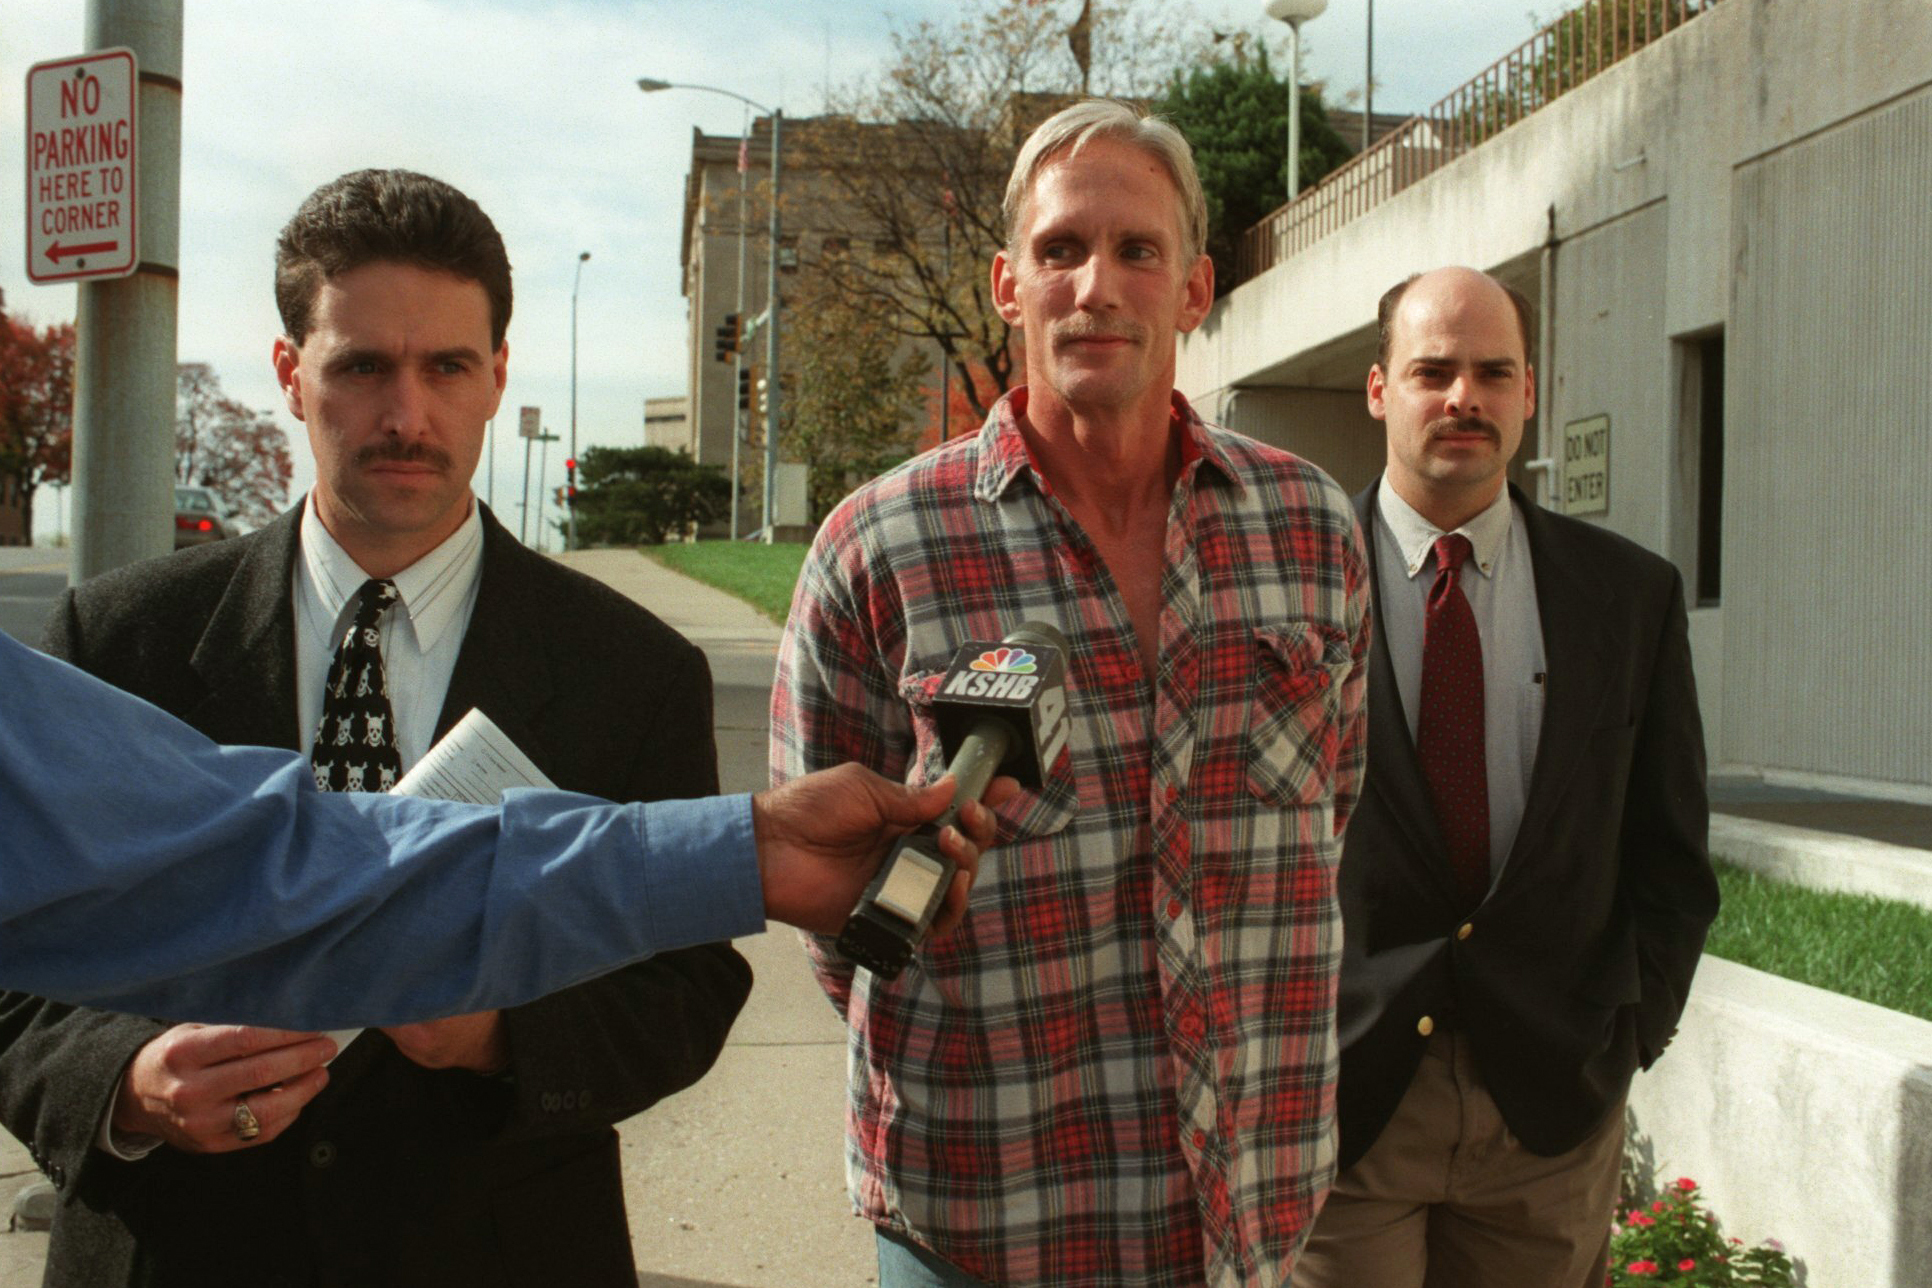 In this 1998 photo, Wesley Ira Purkey, center, is escorted by police officers in Kansas City, Kan., after he was arrested in connection with the death of 80-year-old Mary Ruth Bales. Purkey was also convicted of kidnapping and killing a 16-year-old girl and is scheduled to be executed on July 15, 2020, in Terre Haute, Ind. (Jim Barcus/The Kansas City Star via AP)